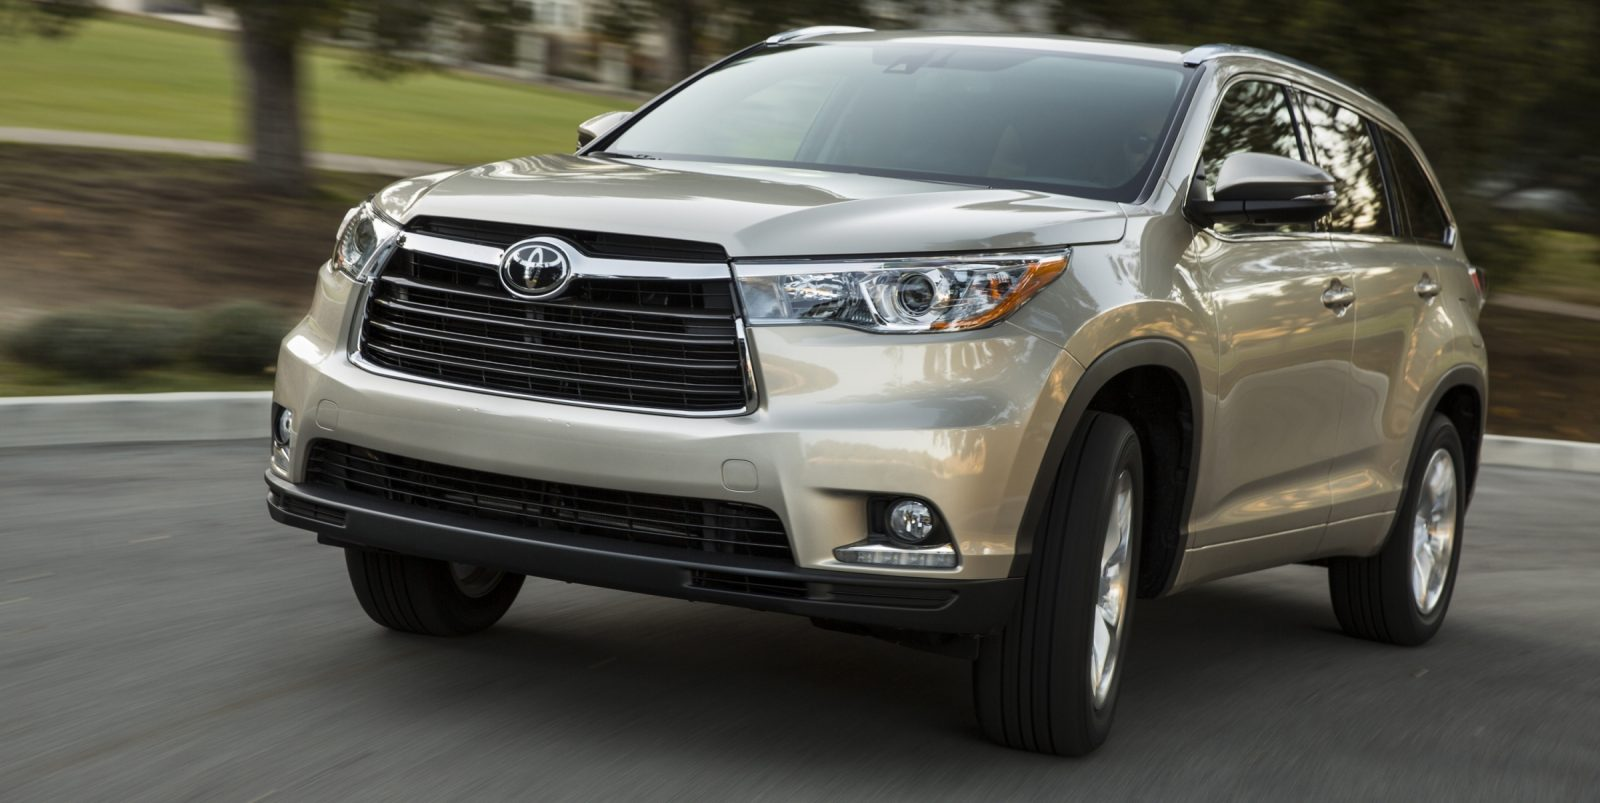 buyers guide to the 2014 toyota highlander with specs pricing and 88 photos. Black Bedroom Furniture Sets. Home Design Ideas